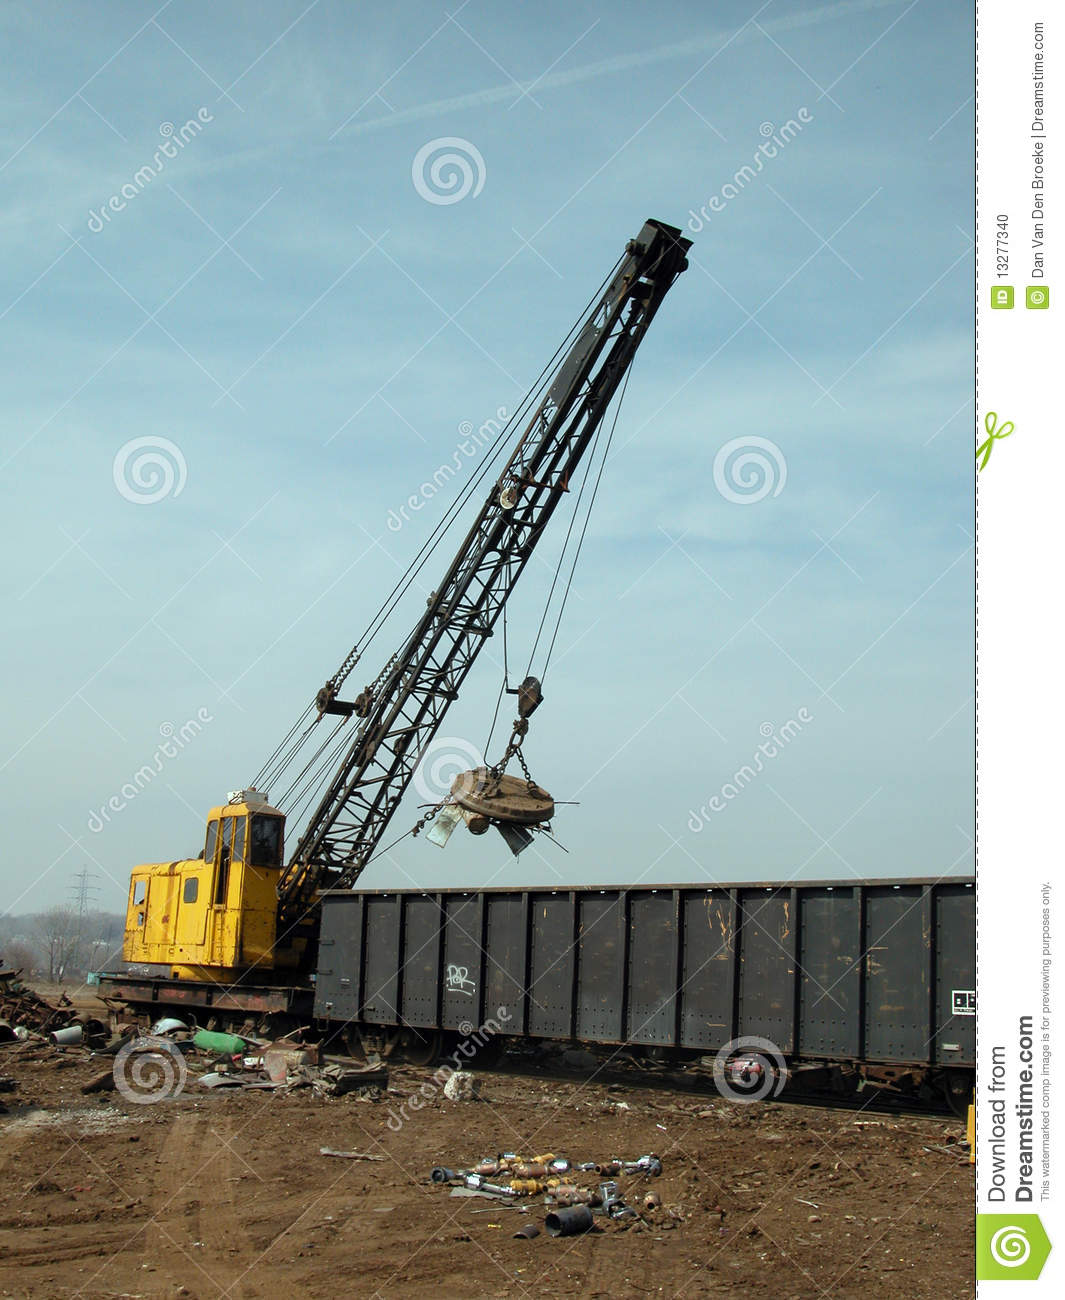 Yard Boss Industrial Cranes : Scrap yard crane with magnet stock photo image of metal